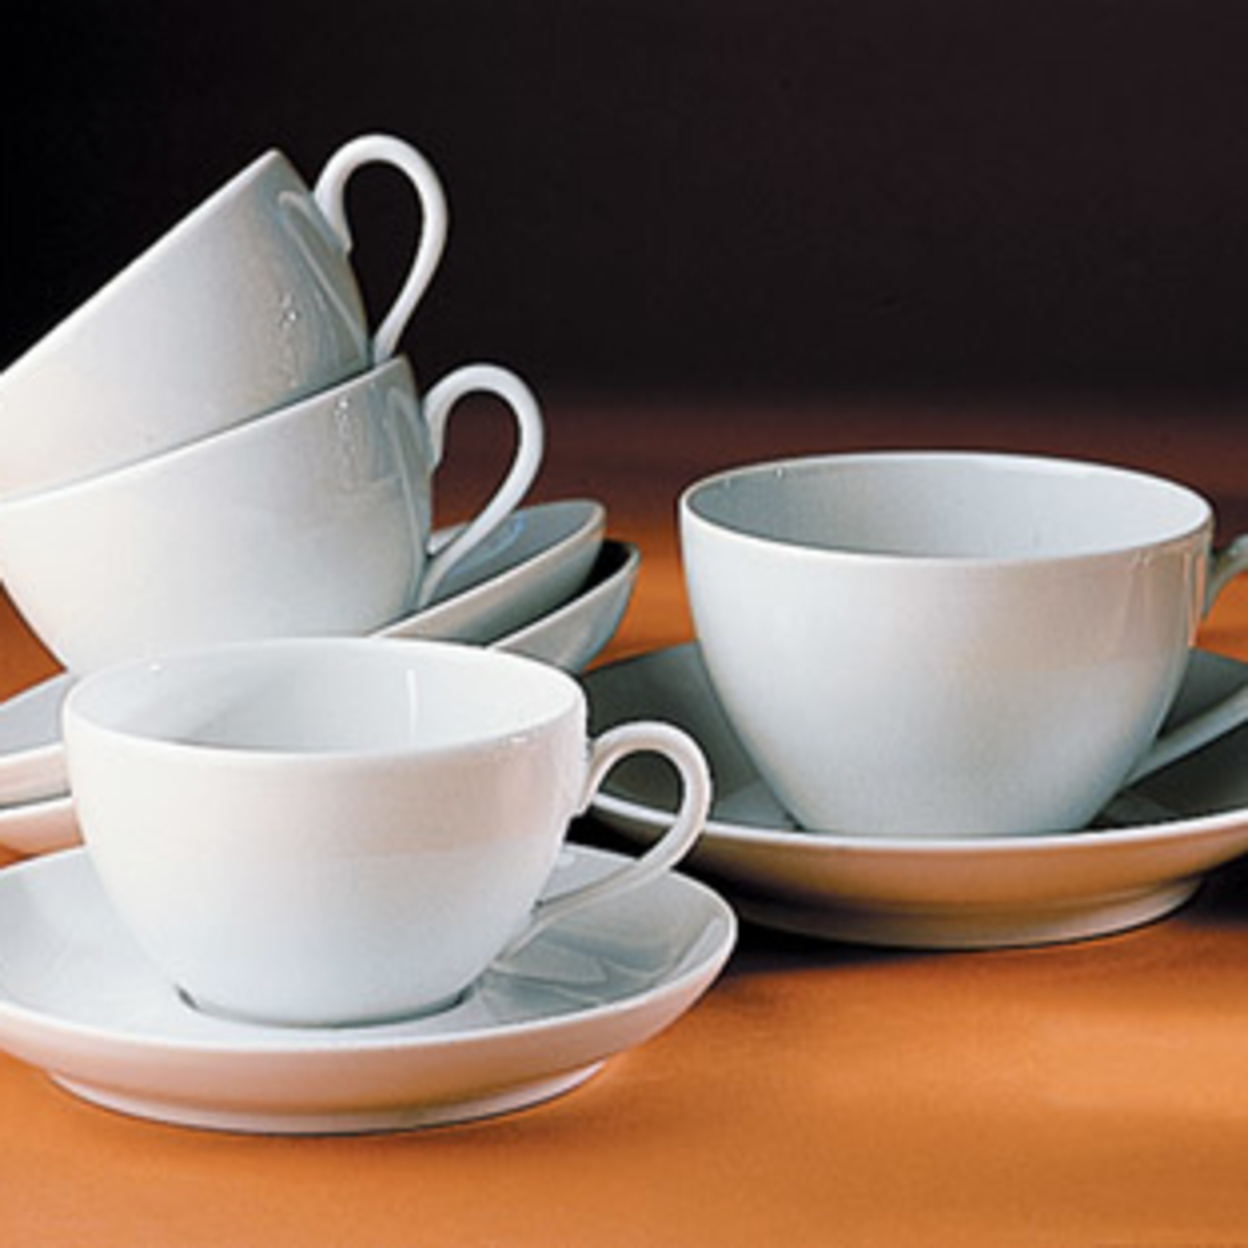 Pillivuyt 520913Bl Cecil Coffee Saucer (For Espresso Cup) 59f1f3dae224613af3343877